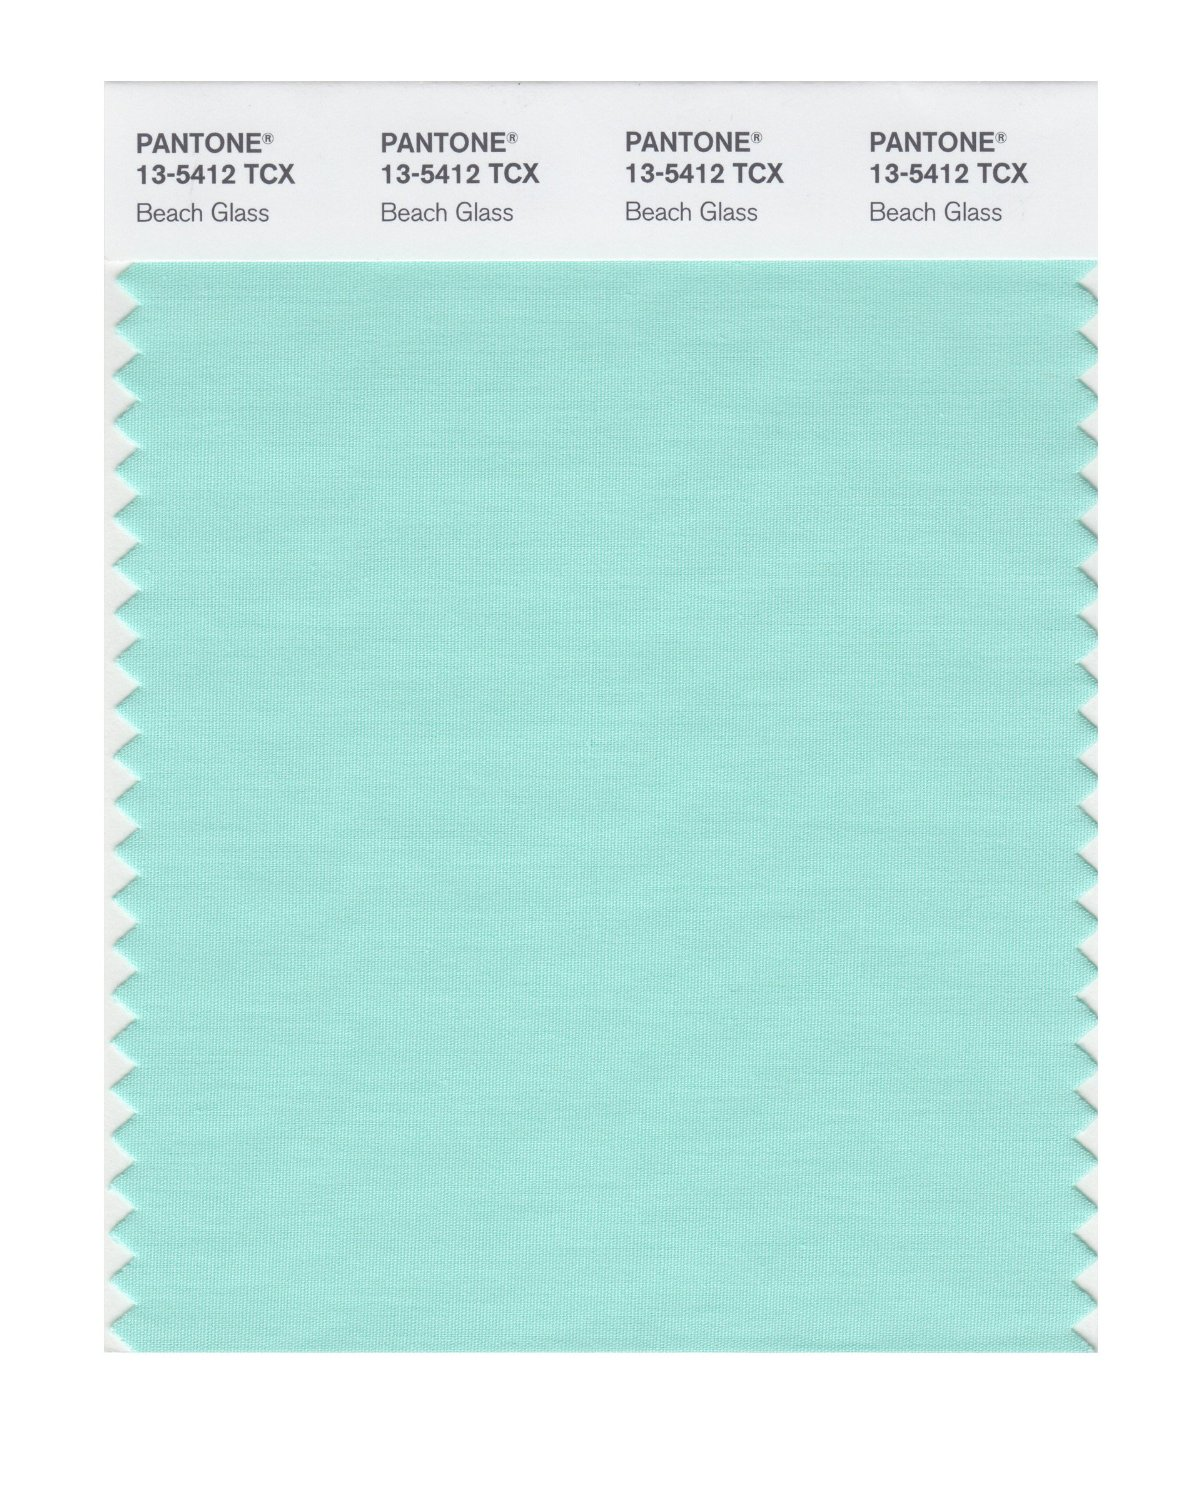 Pantone Smart Swatch 13-5412 Beach Glass